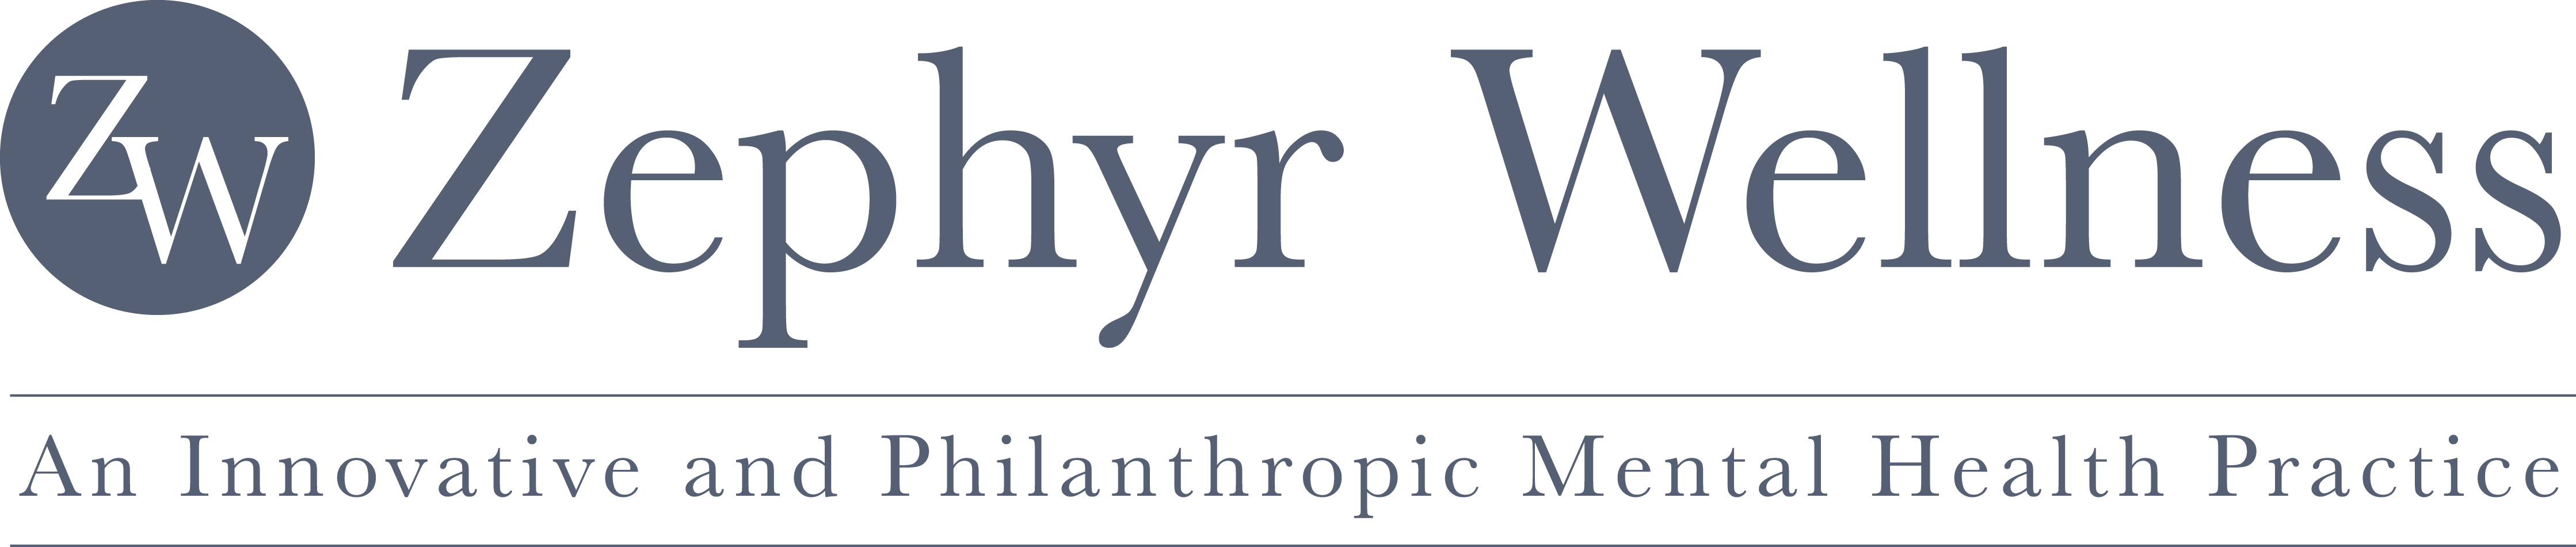 Walk the Talk America Partners with Zephyr Wellness to End Stigma Facing Mental Health Care and Responsible Gun Ownership